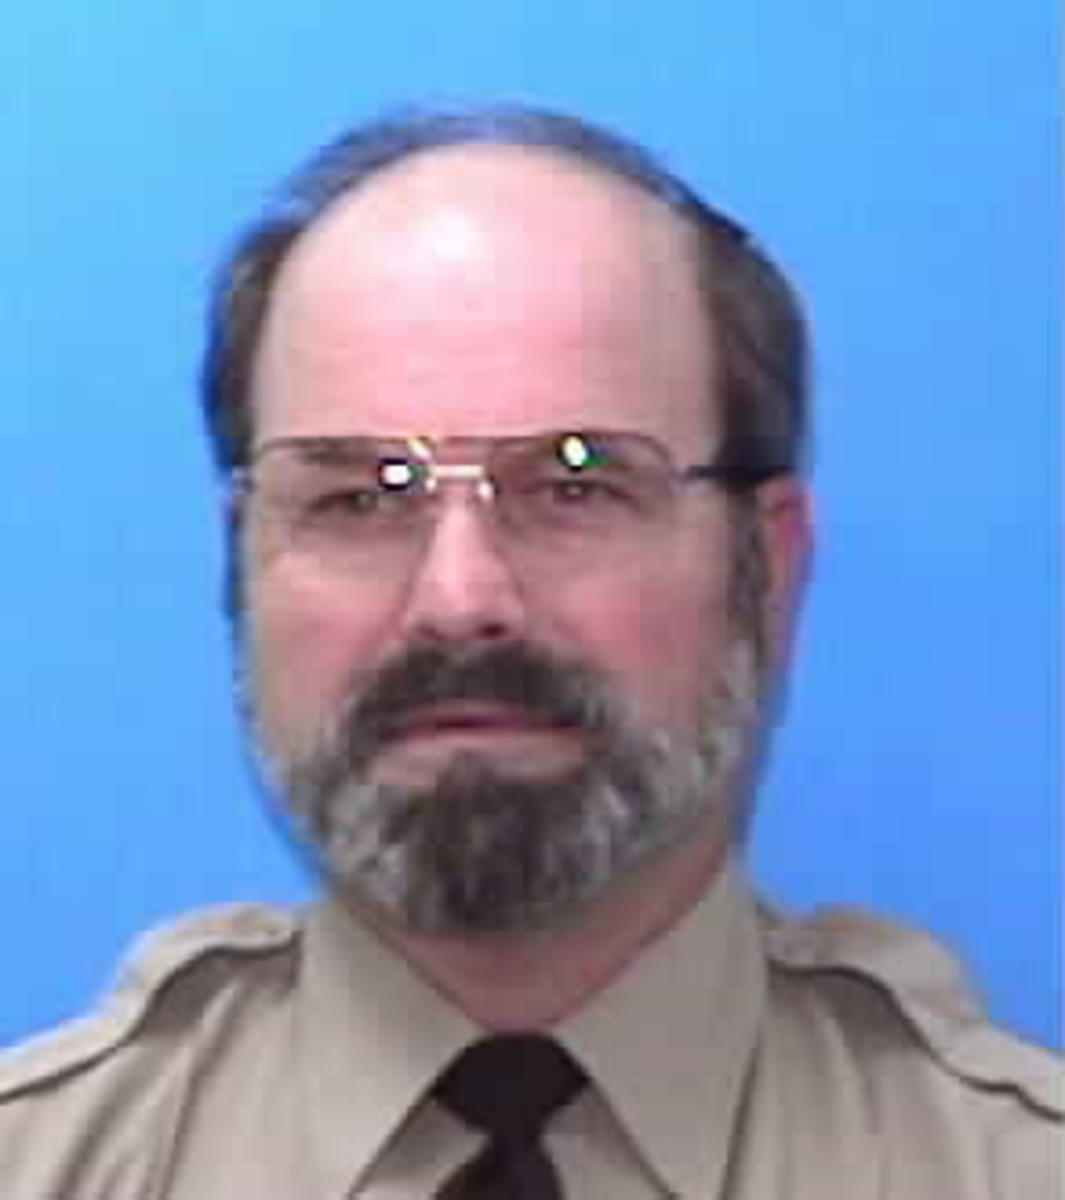 profile-of-a-serial-killer-part-5-dennis-rader-the-btk-killer